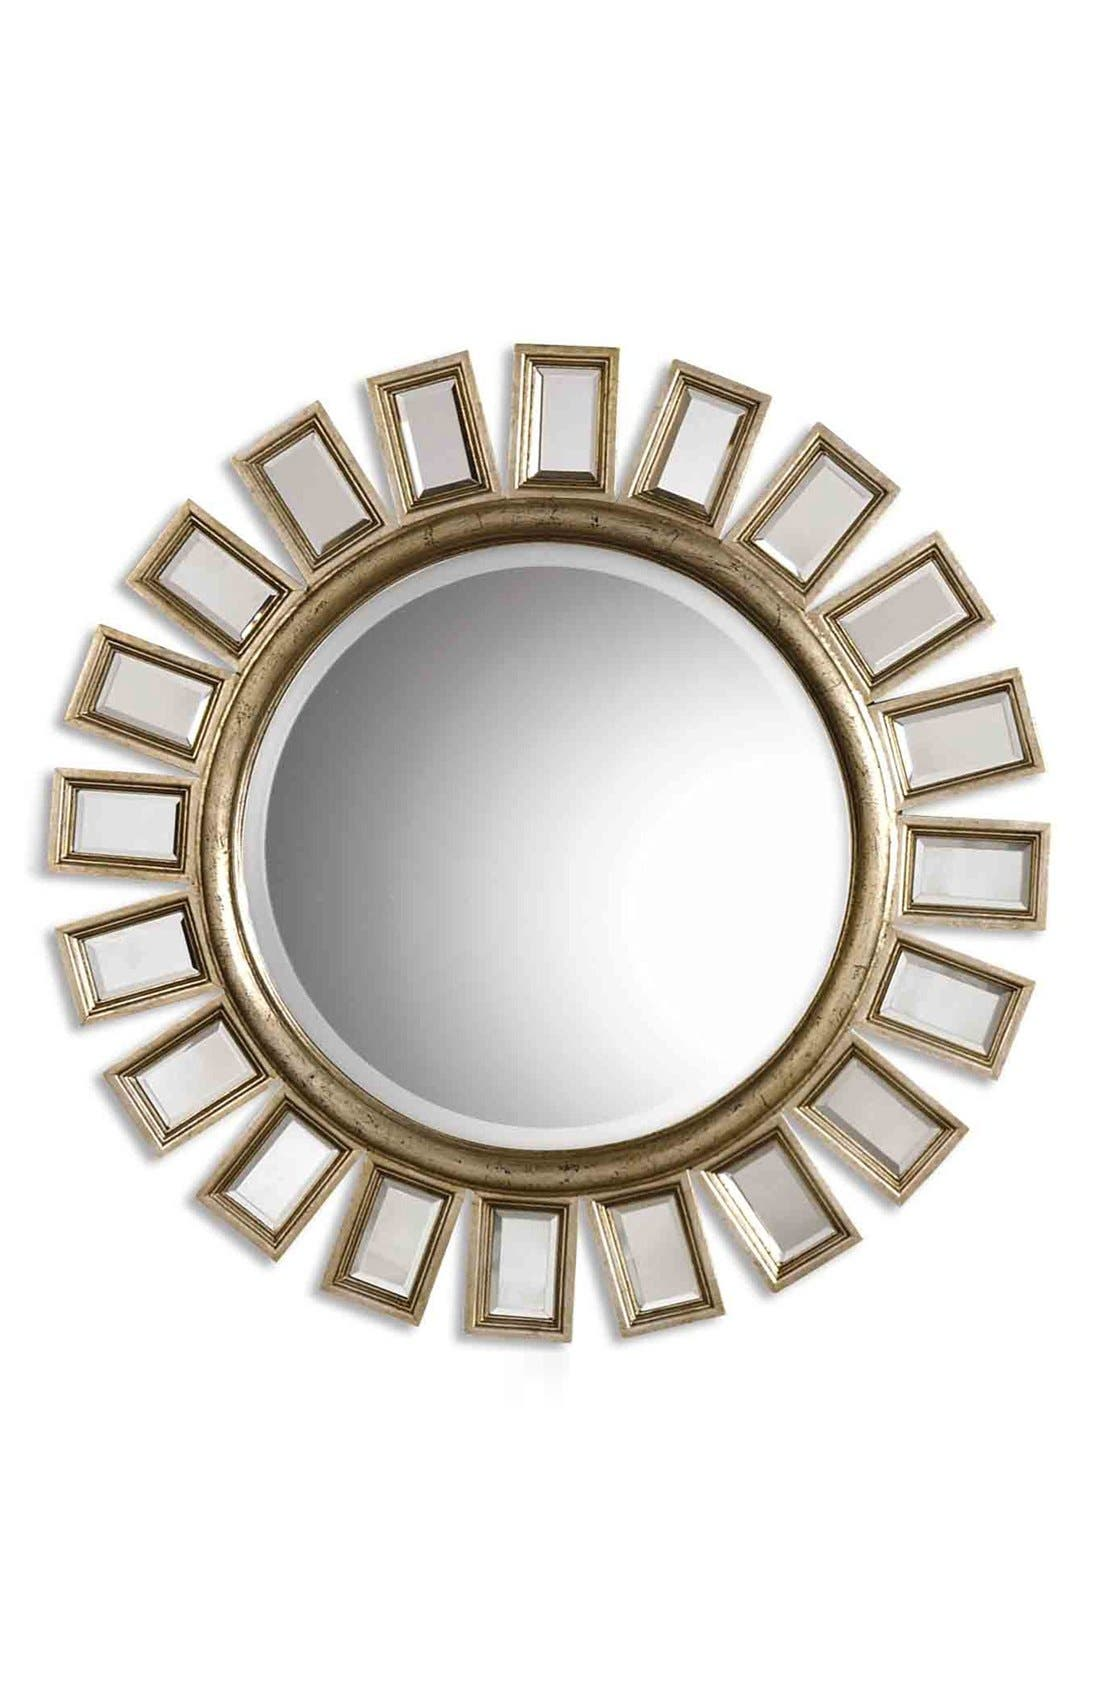 Alternate Image 1 Selected - Uttermost 'Cyrus' Round Mirror